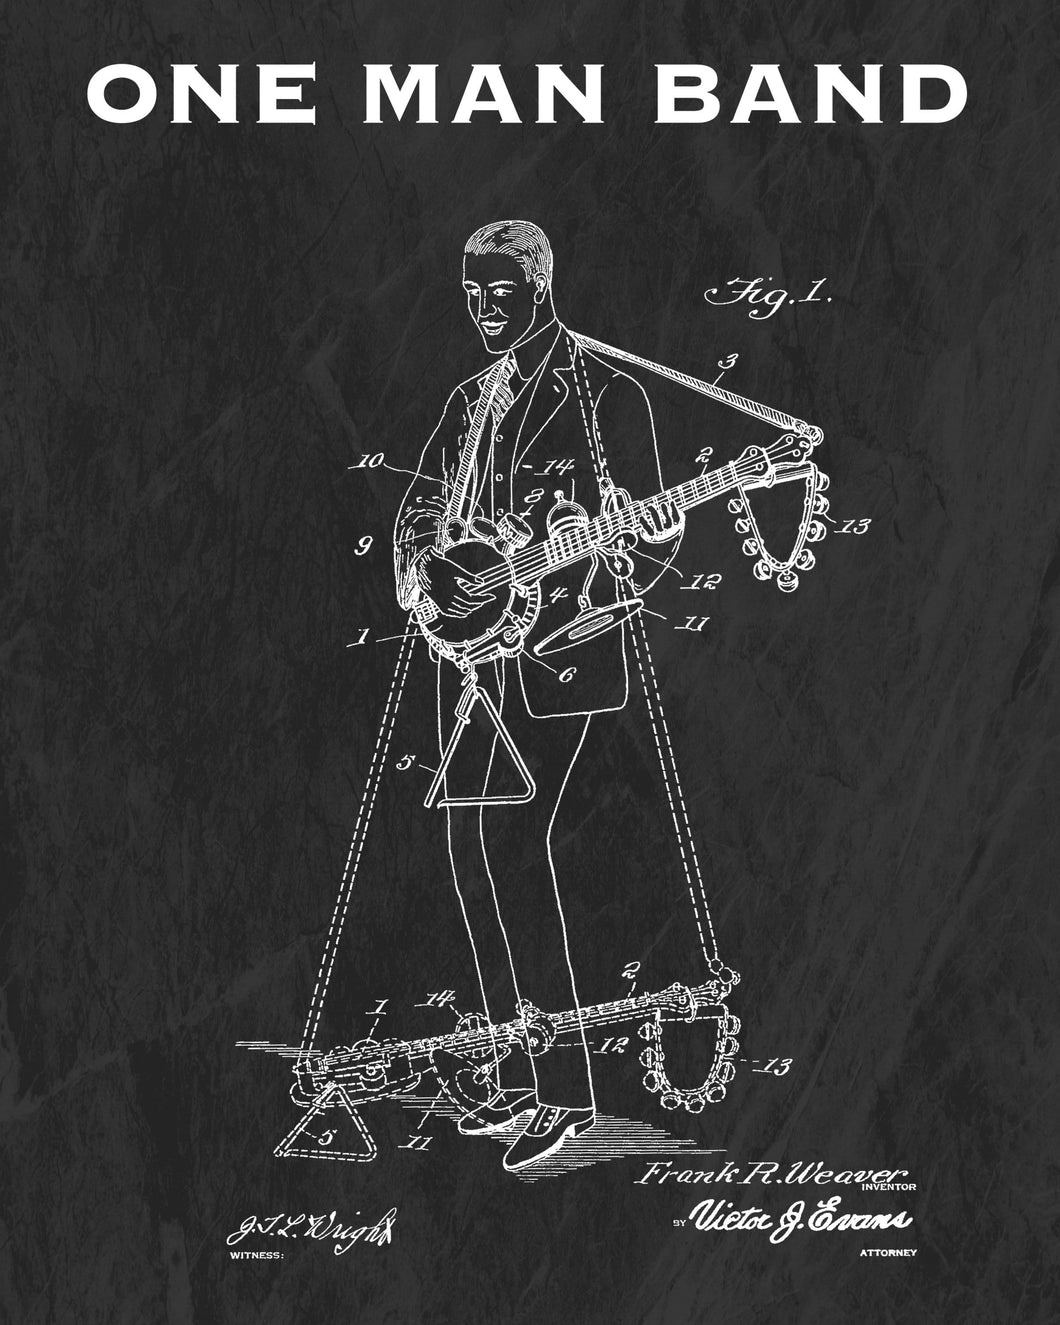 One Man Band Patent Art Print